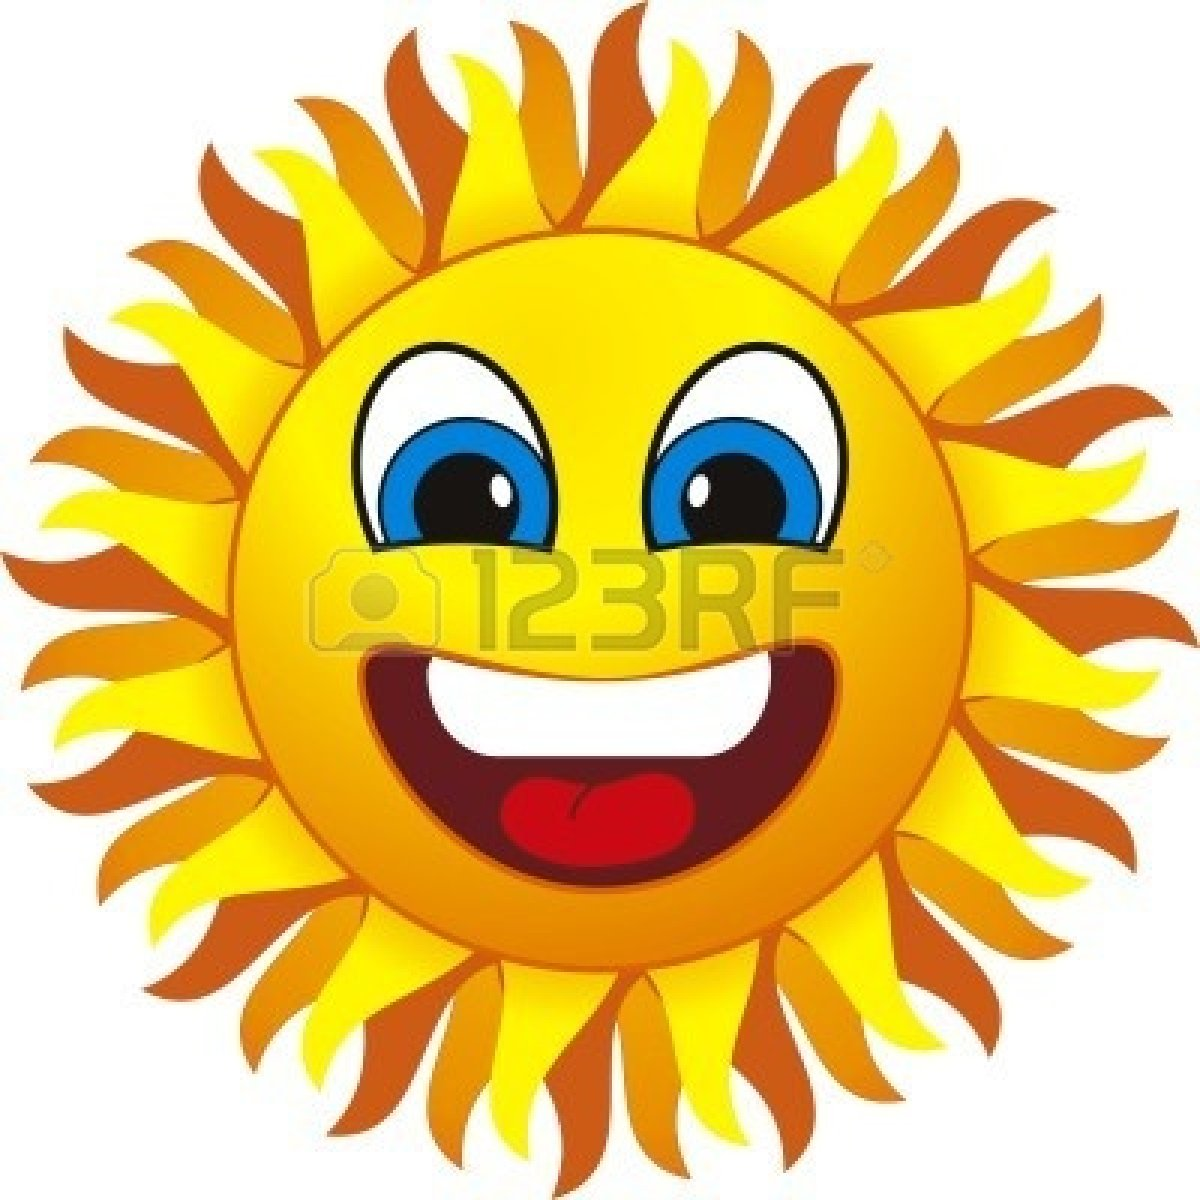 Smiling sun images - Smiling 20sun 20clipart 20royalty 20free